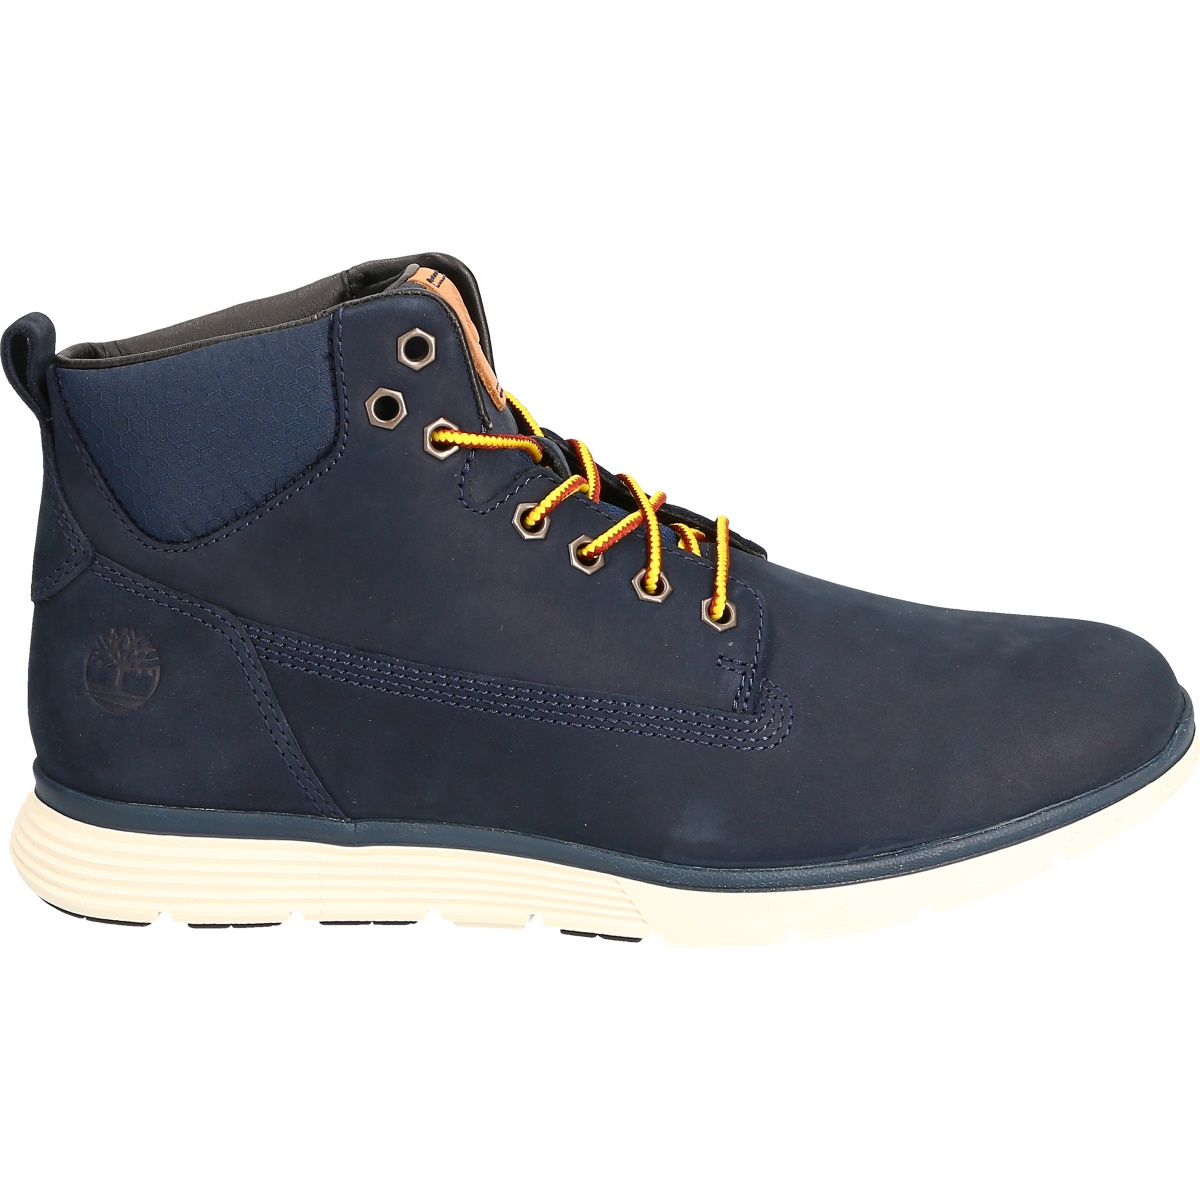 Timberland #A1OEM Men's shoes Ankle Boots buy shoes at our